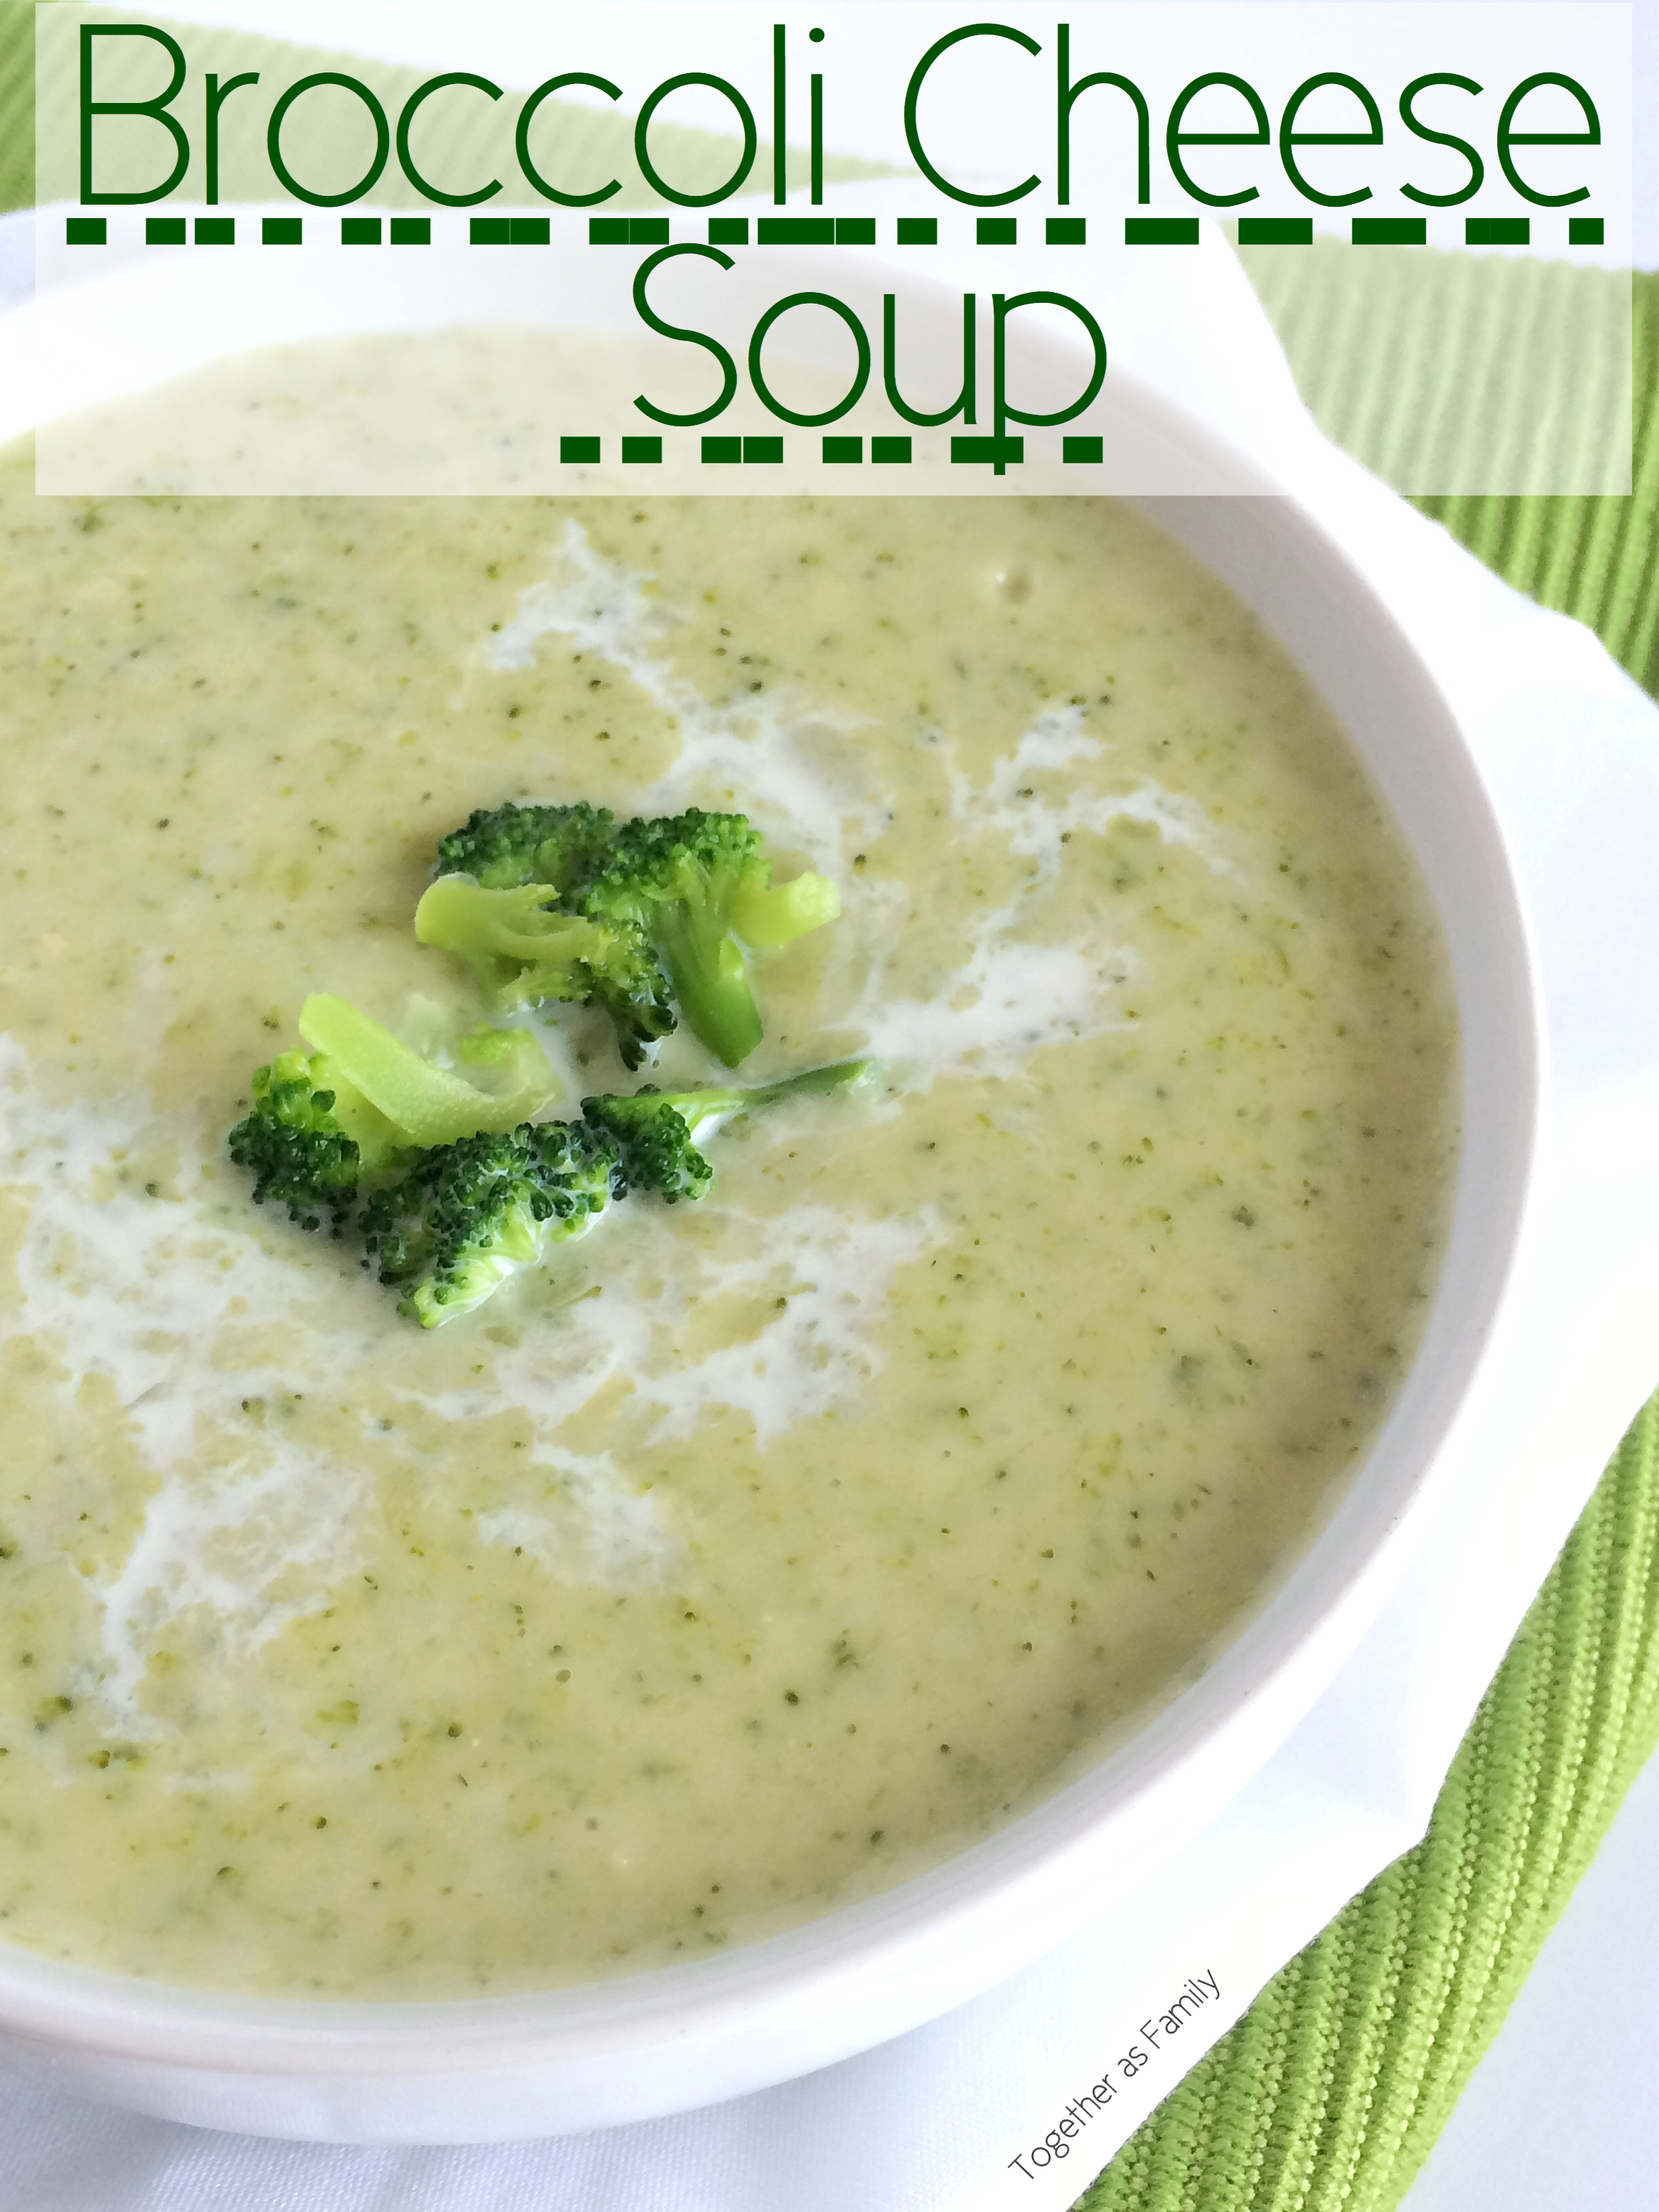 Broccoli Cheese Soup - Together as Family